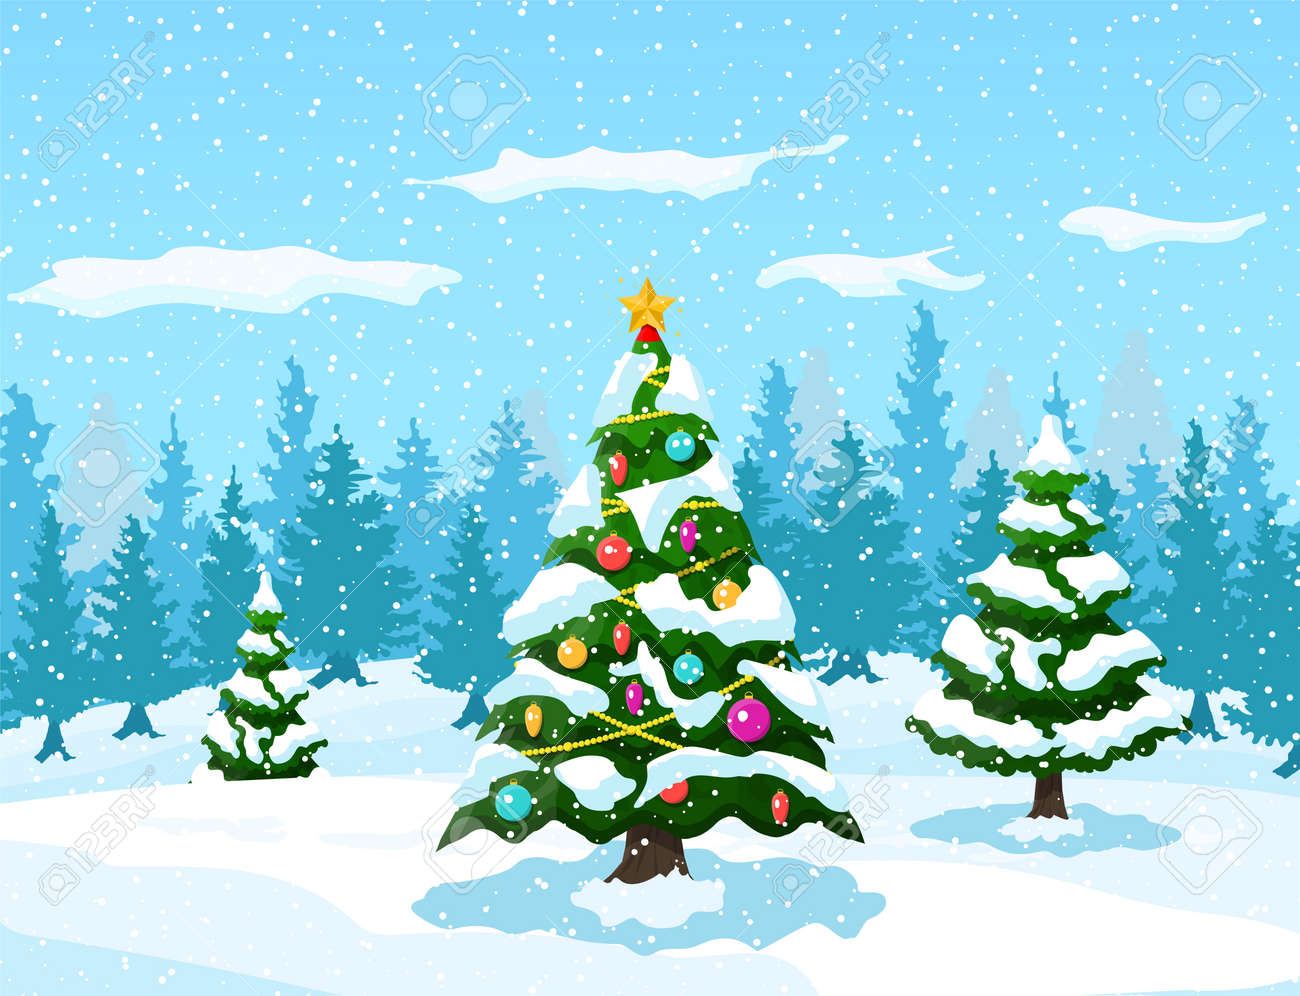 Christmas Background Clipart.Christmas Background Christmas Tree With Garlands And Balls